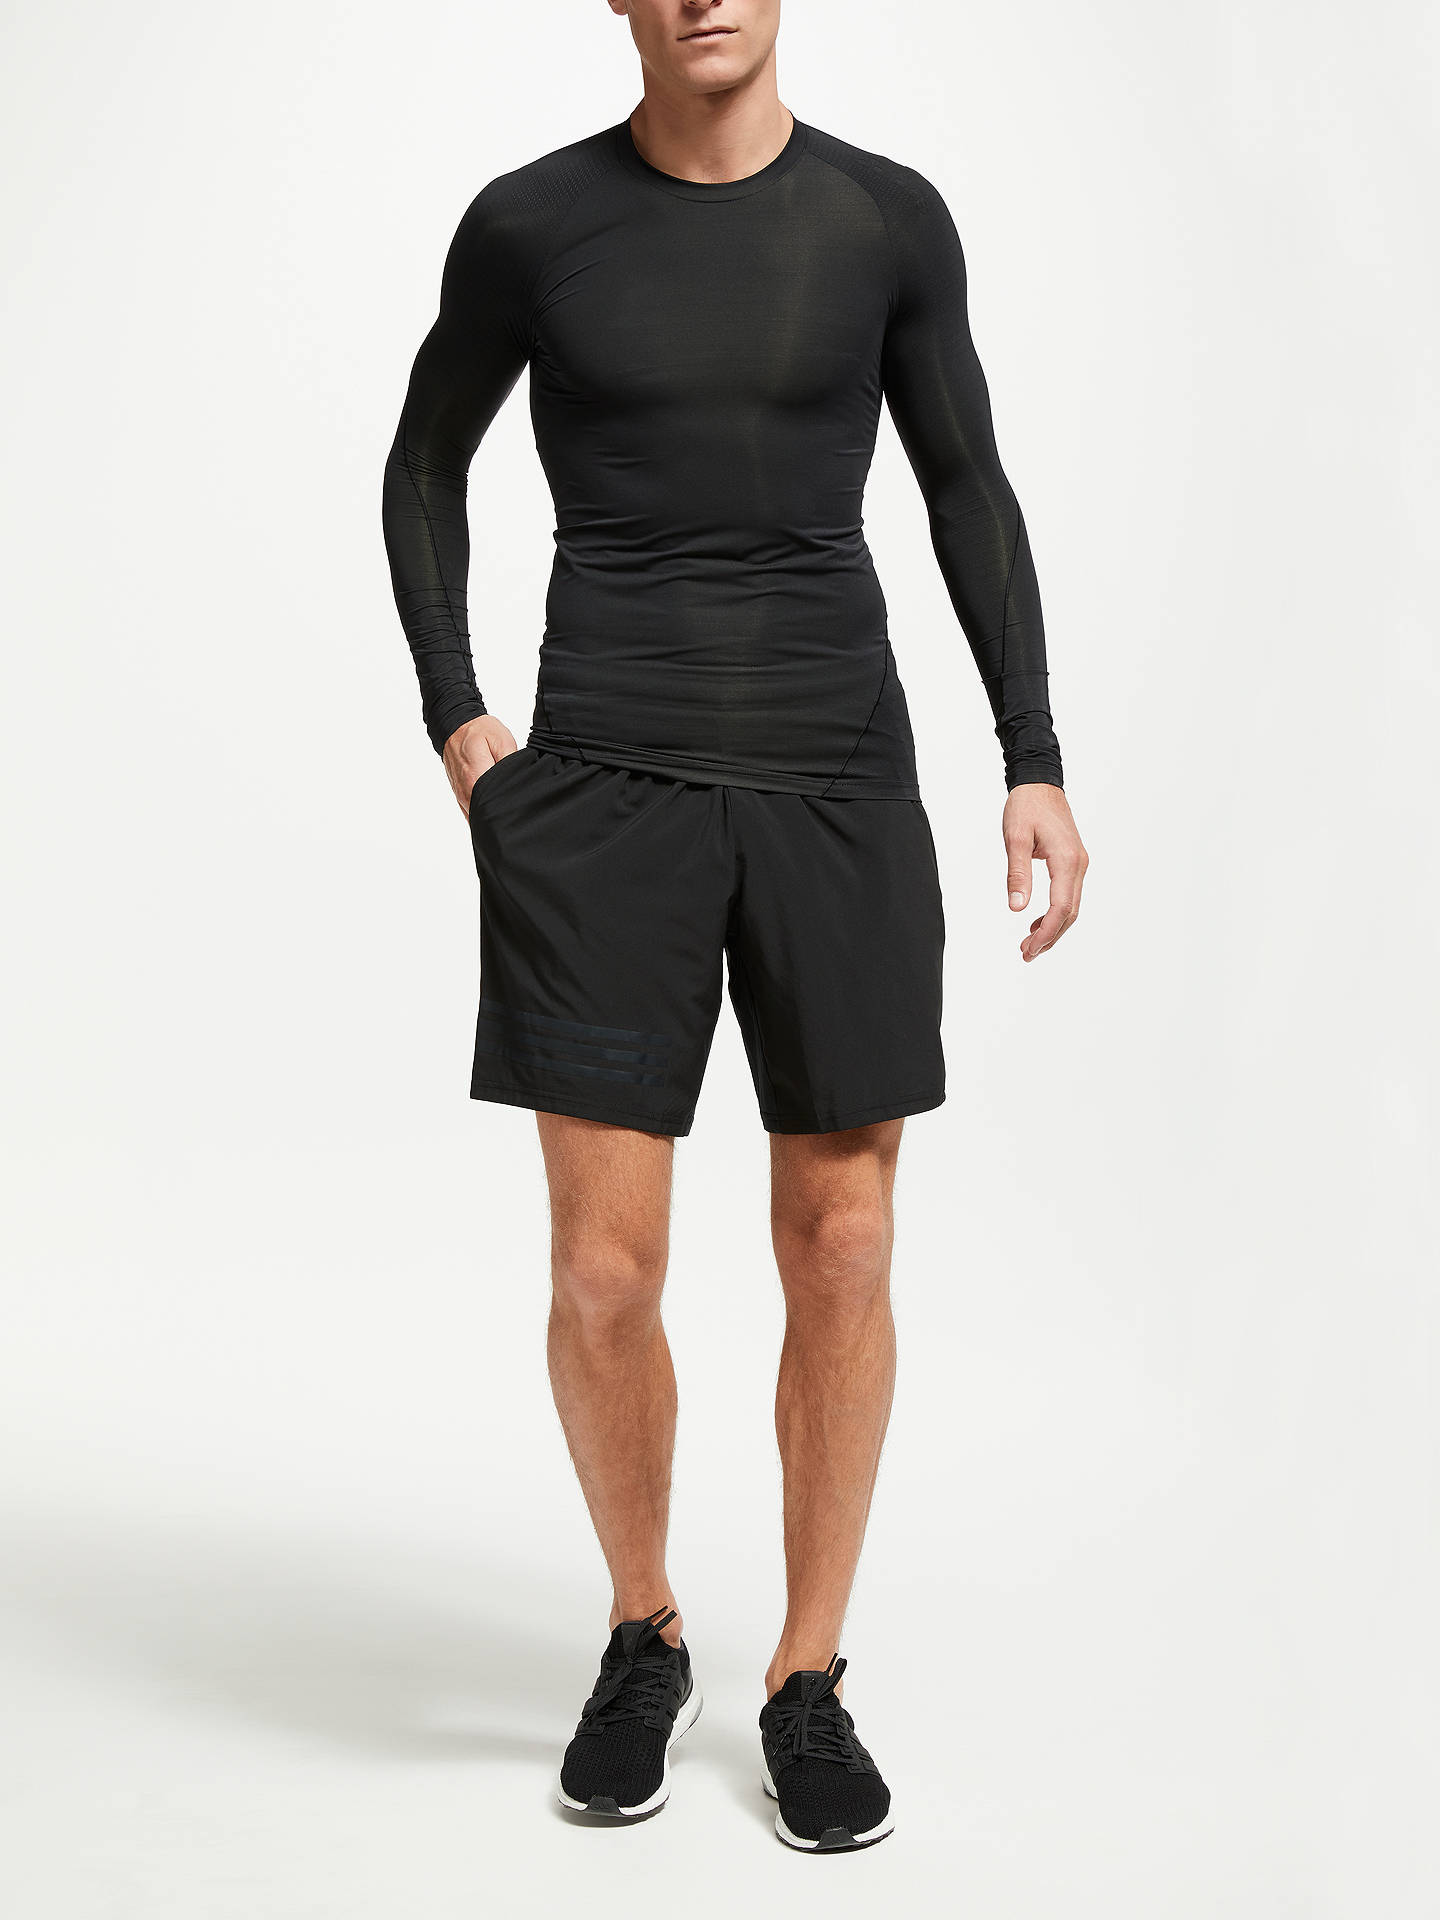 Buy adidas Alpha Skin Tech Long Sleeve Training T-Shirt, Black, S Online at johnlewis.com